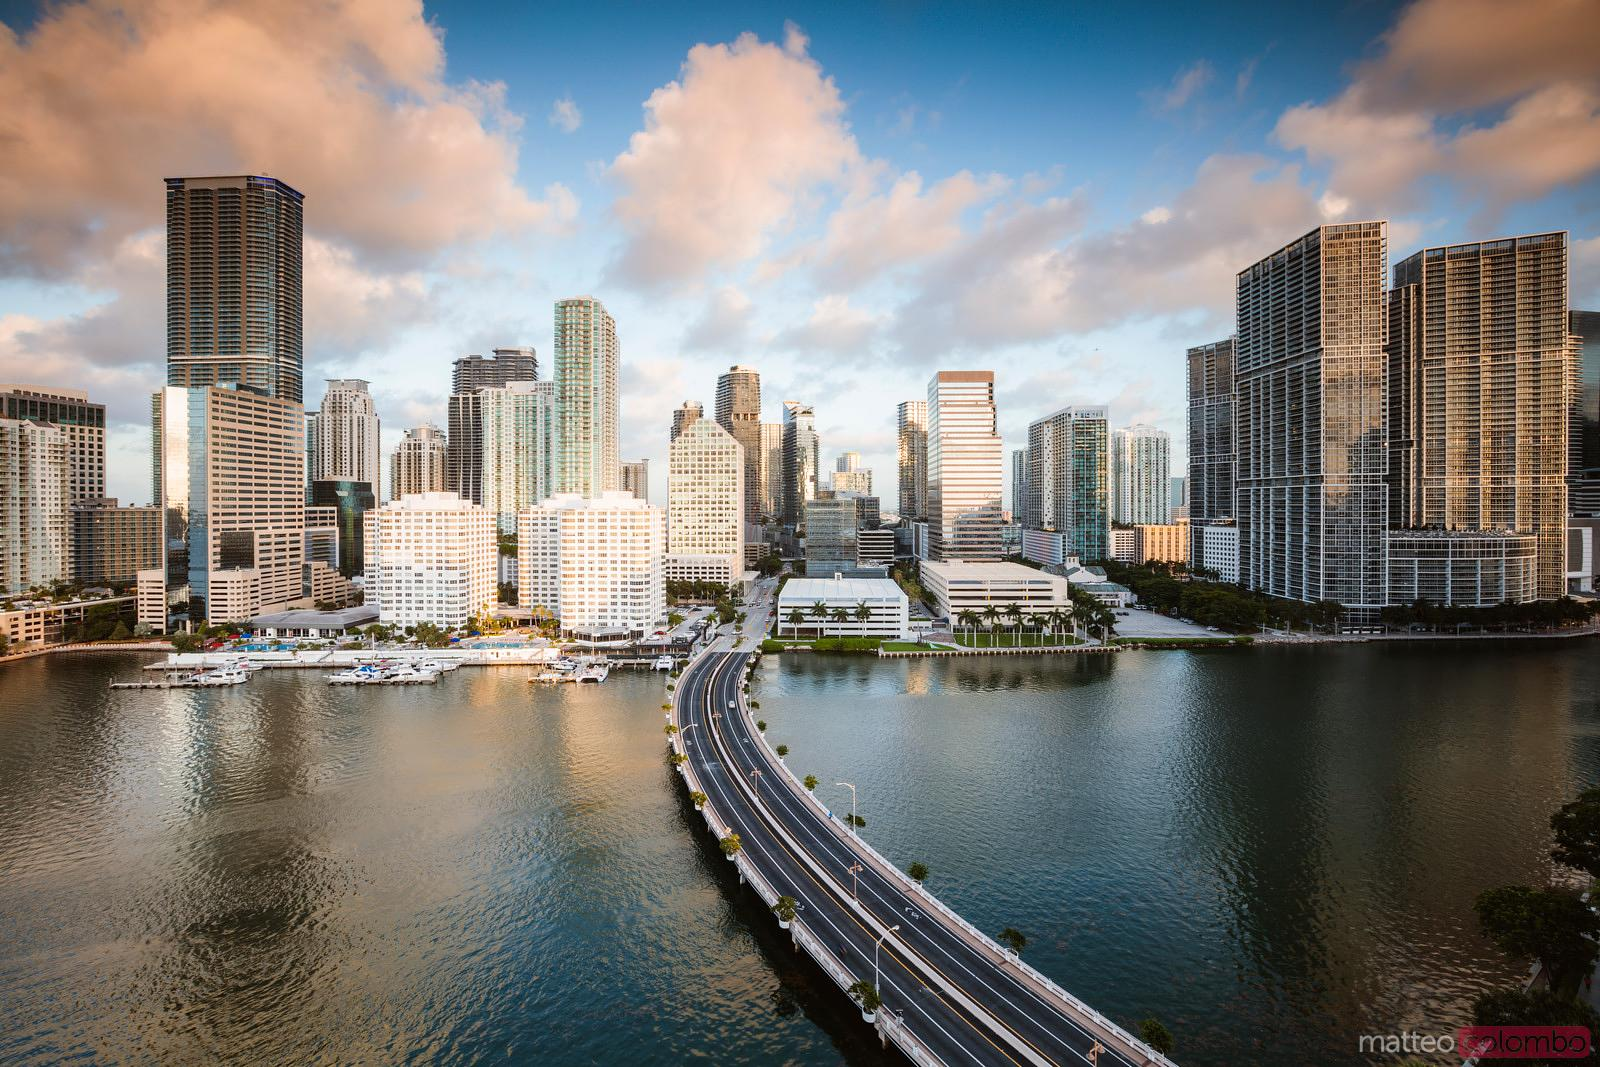 Miami downtown skyline at sunset, Florida, United States